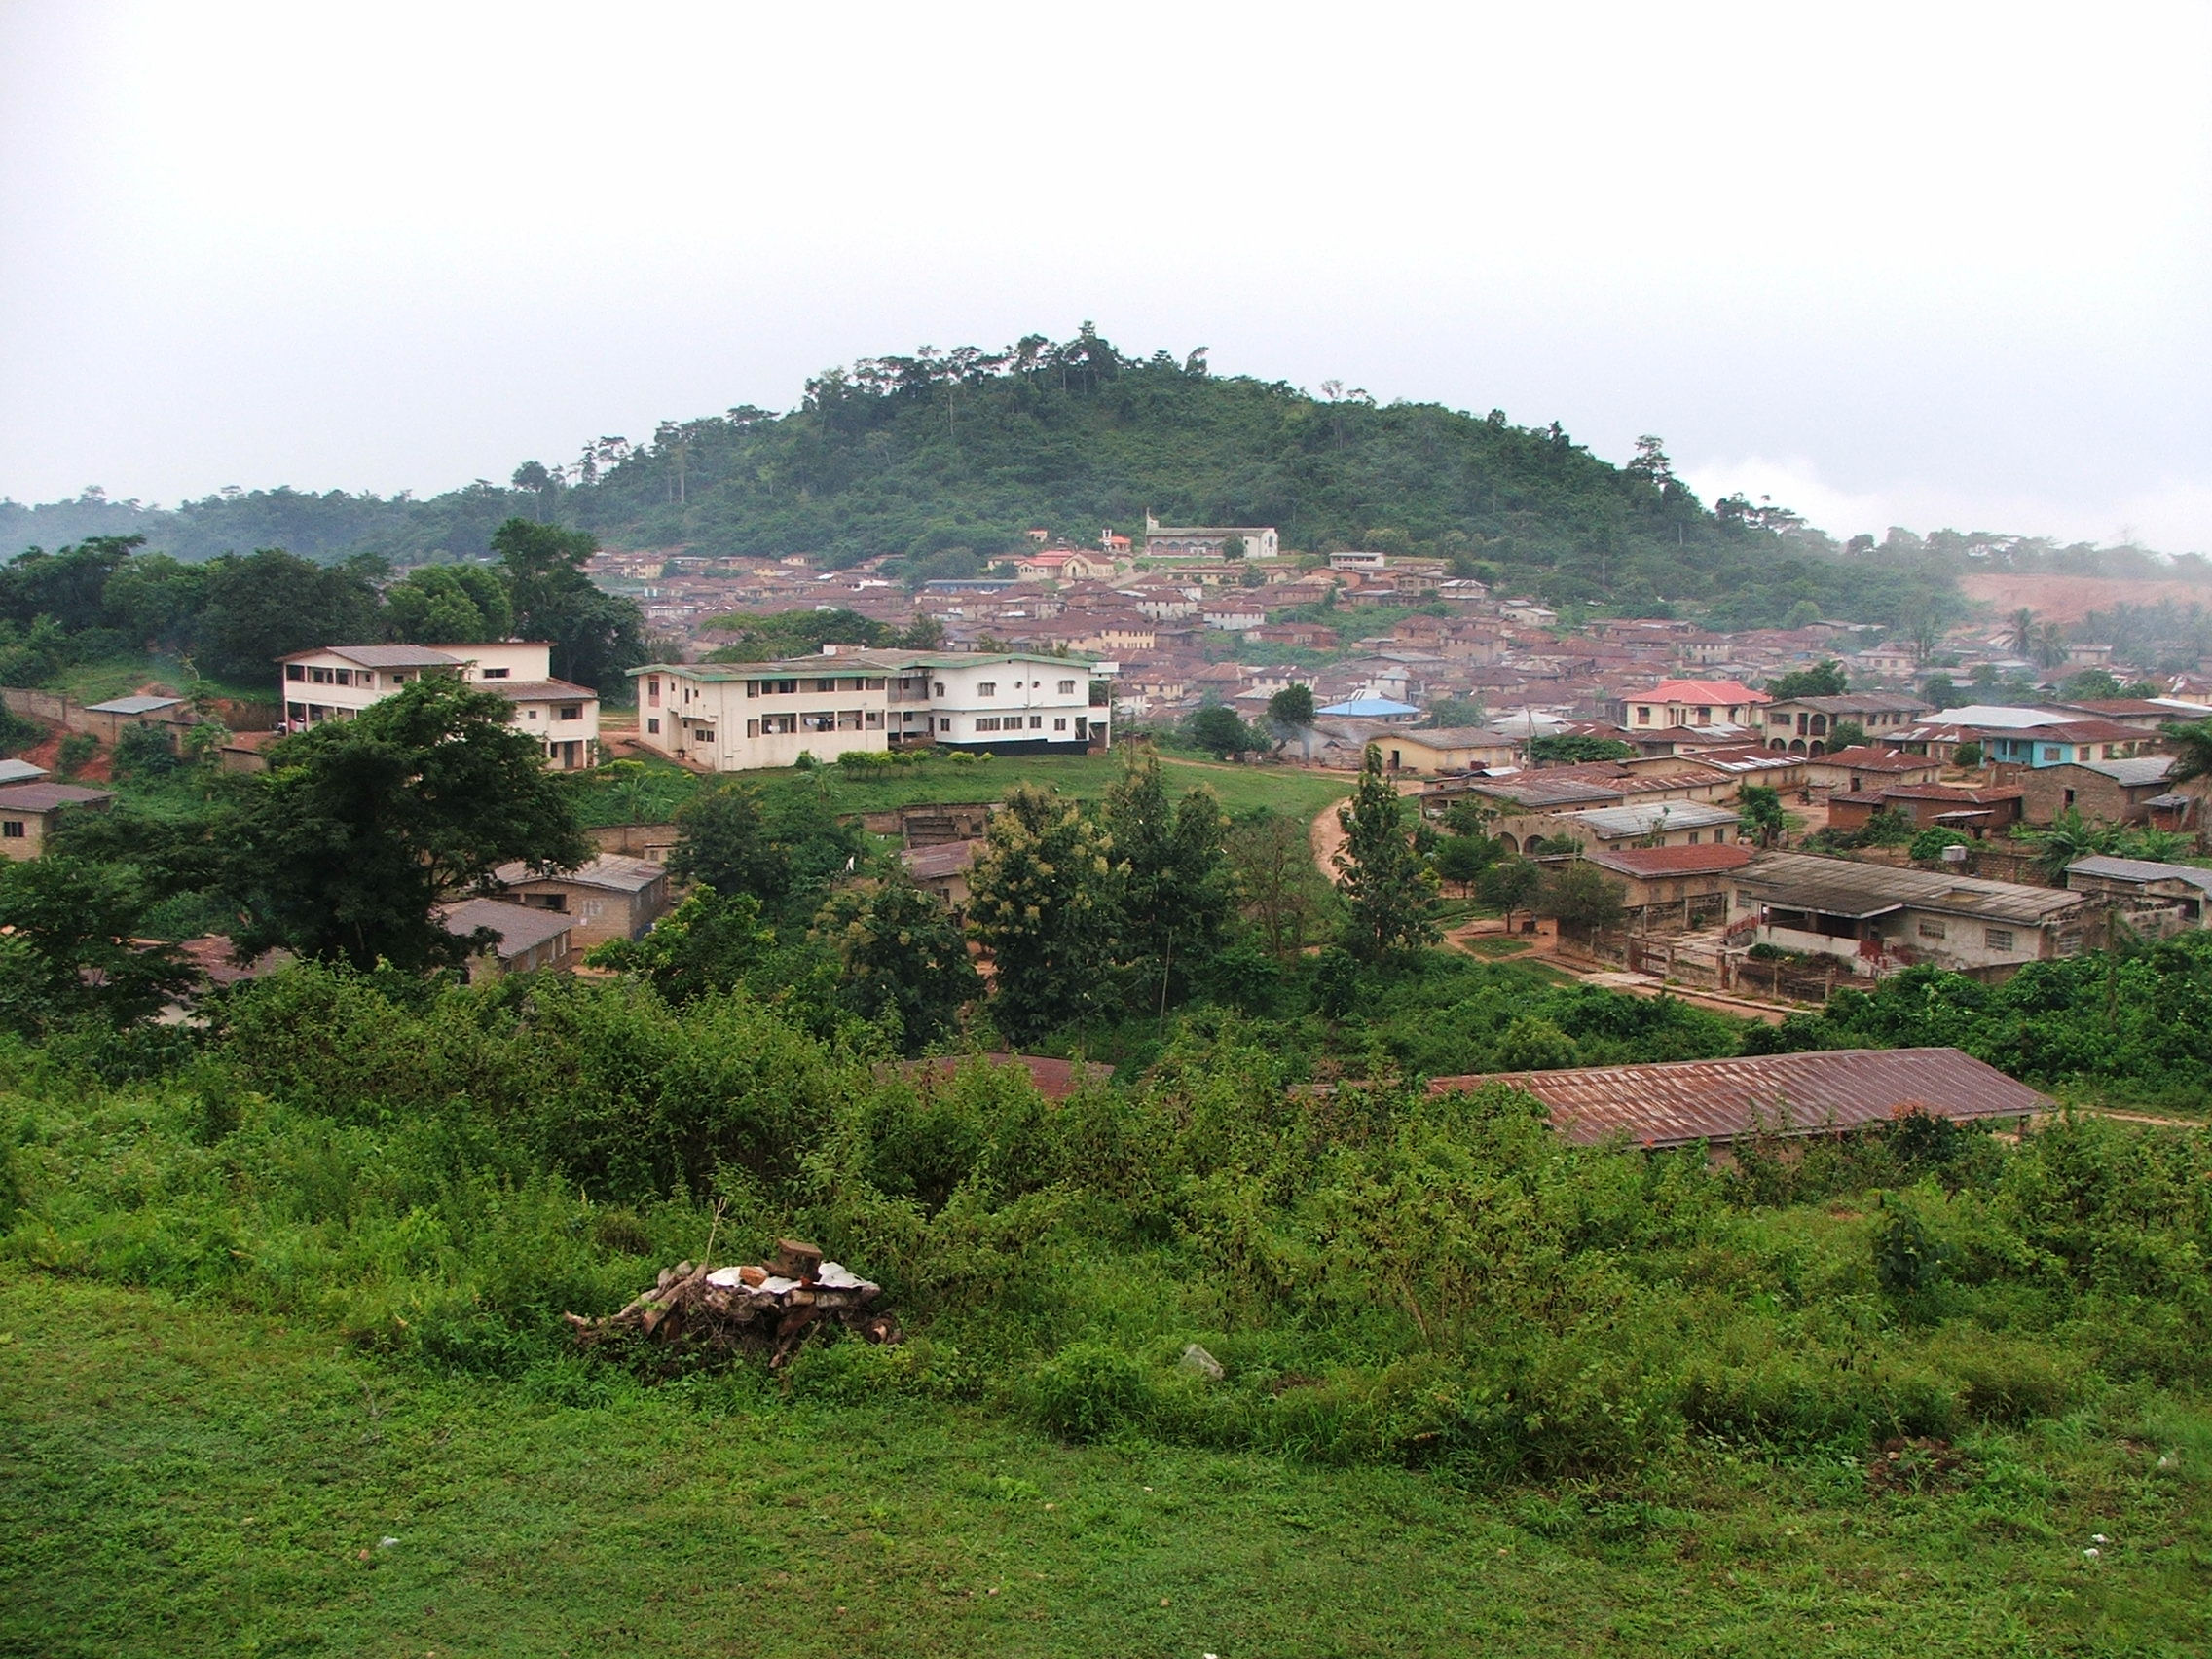 File:Ipele Ondo State Nigeria.JPG - Wikipedia, the free encyclopedia